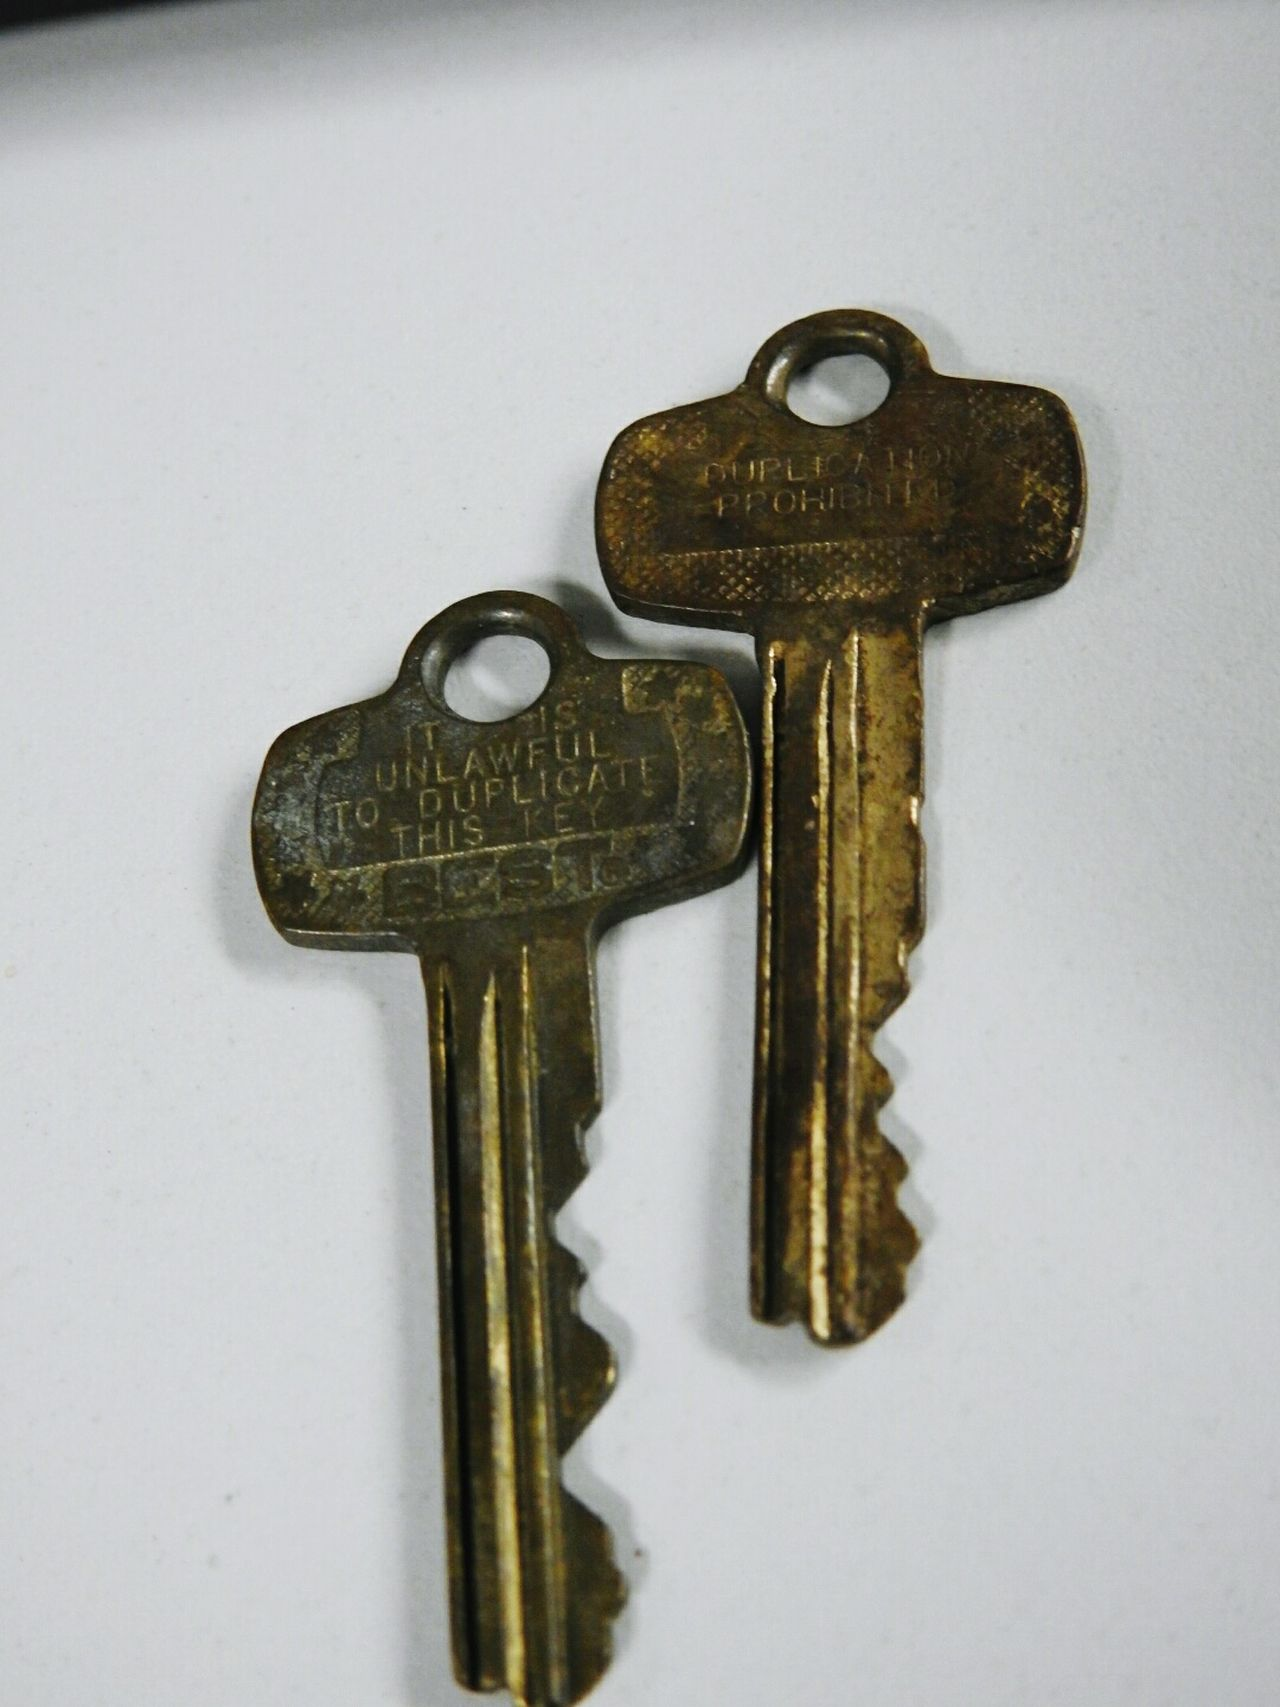 Old keys. Safety Security Metal Lock Close-up Old-fashioned Focus On Foreground White Background Protection Keys Old Keys Old Keys! Keys Photography Key Old Two Lock And Key  Still Life Still Life Photography Locksmith